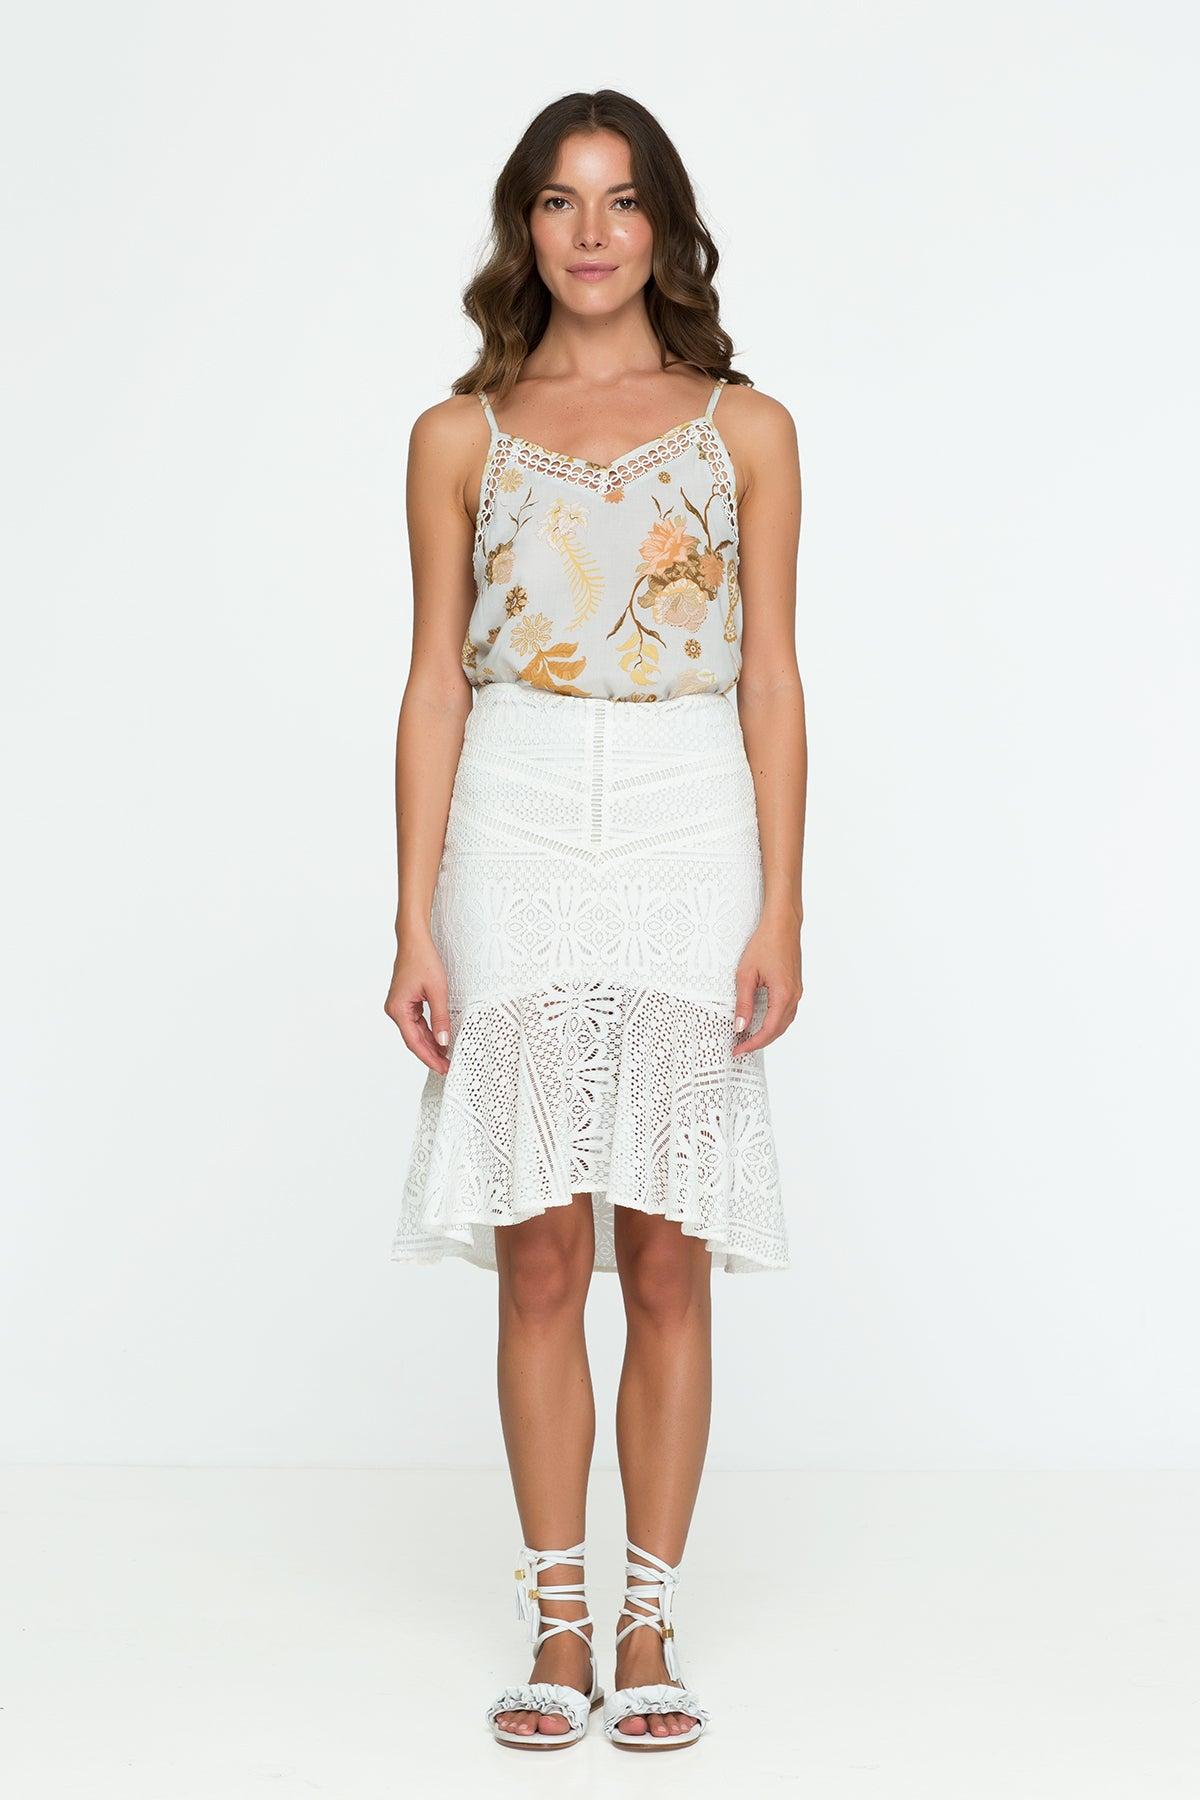 Lace Skirt White Office Pencil Skirt